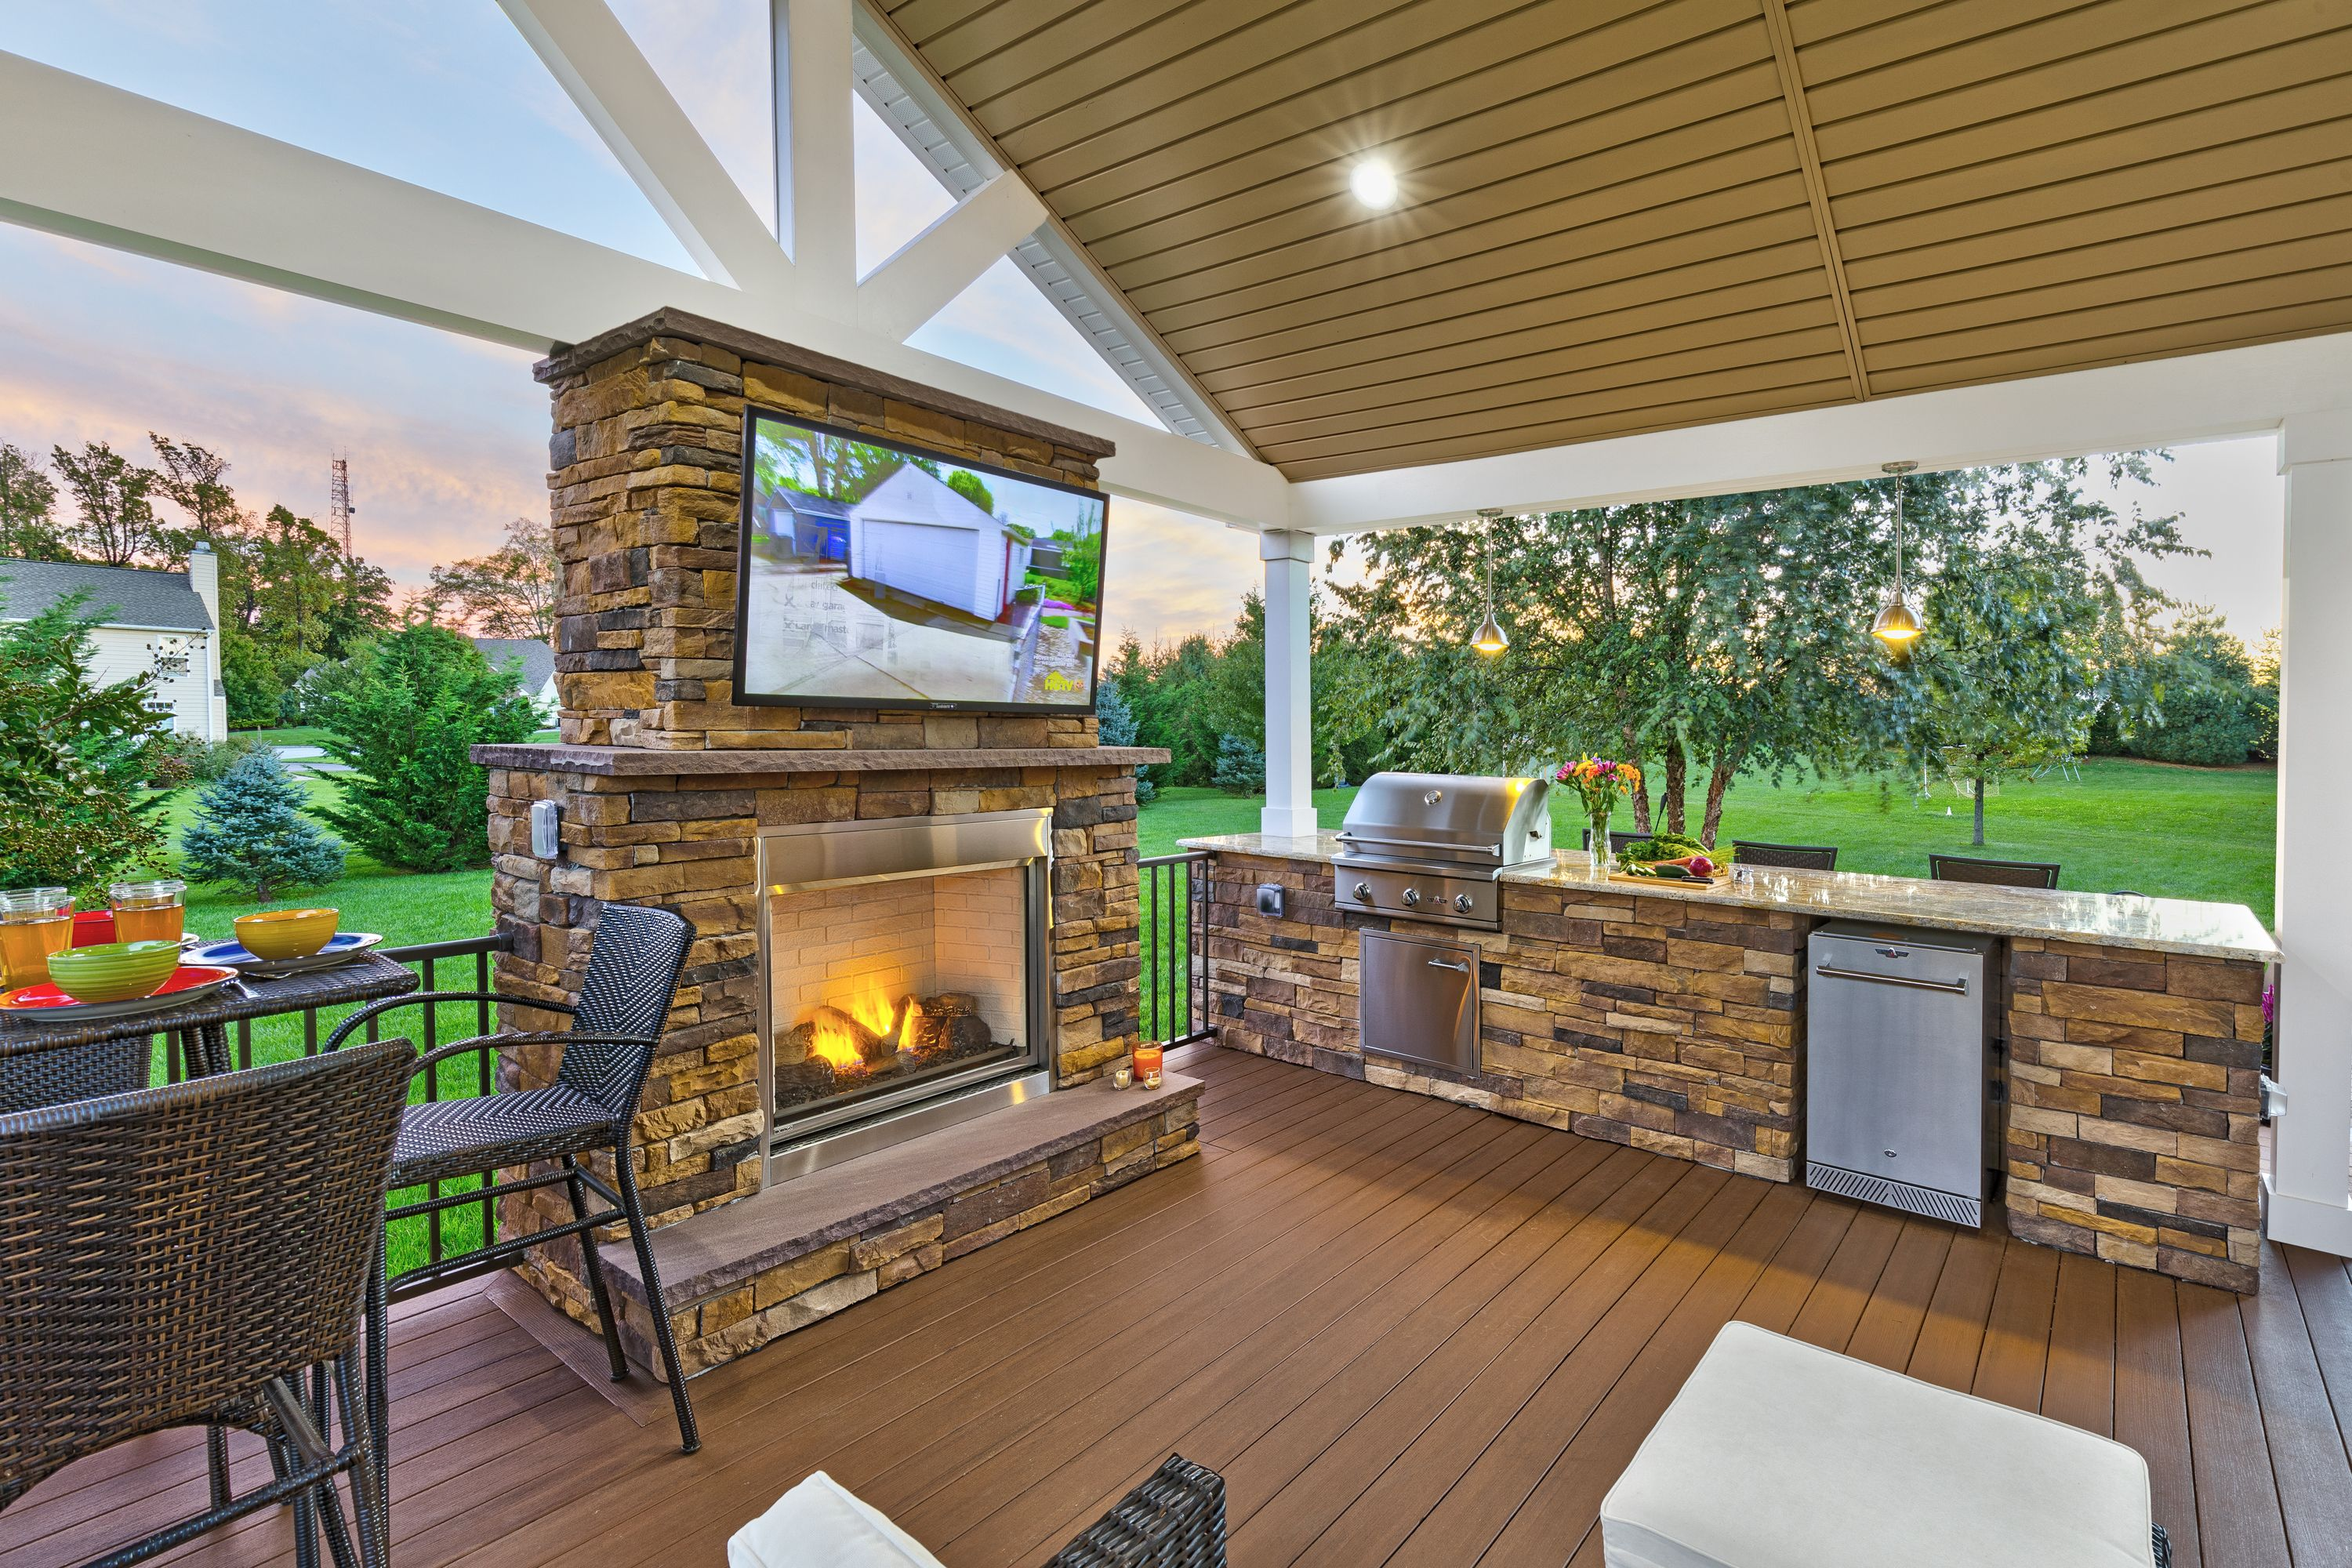 Custom outdoor living space designers Delaware | Outdoor ... on Disabatino Outdoor Living id=44339